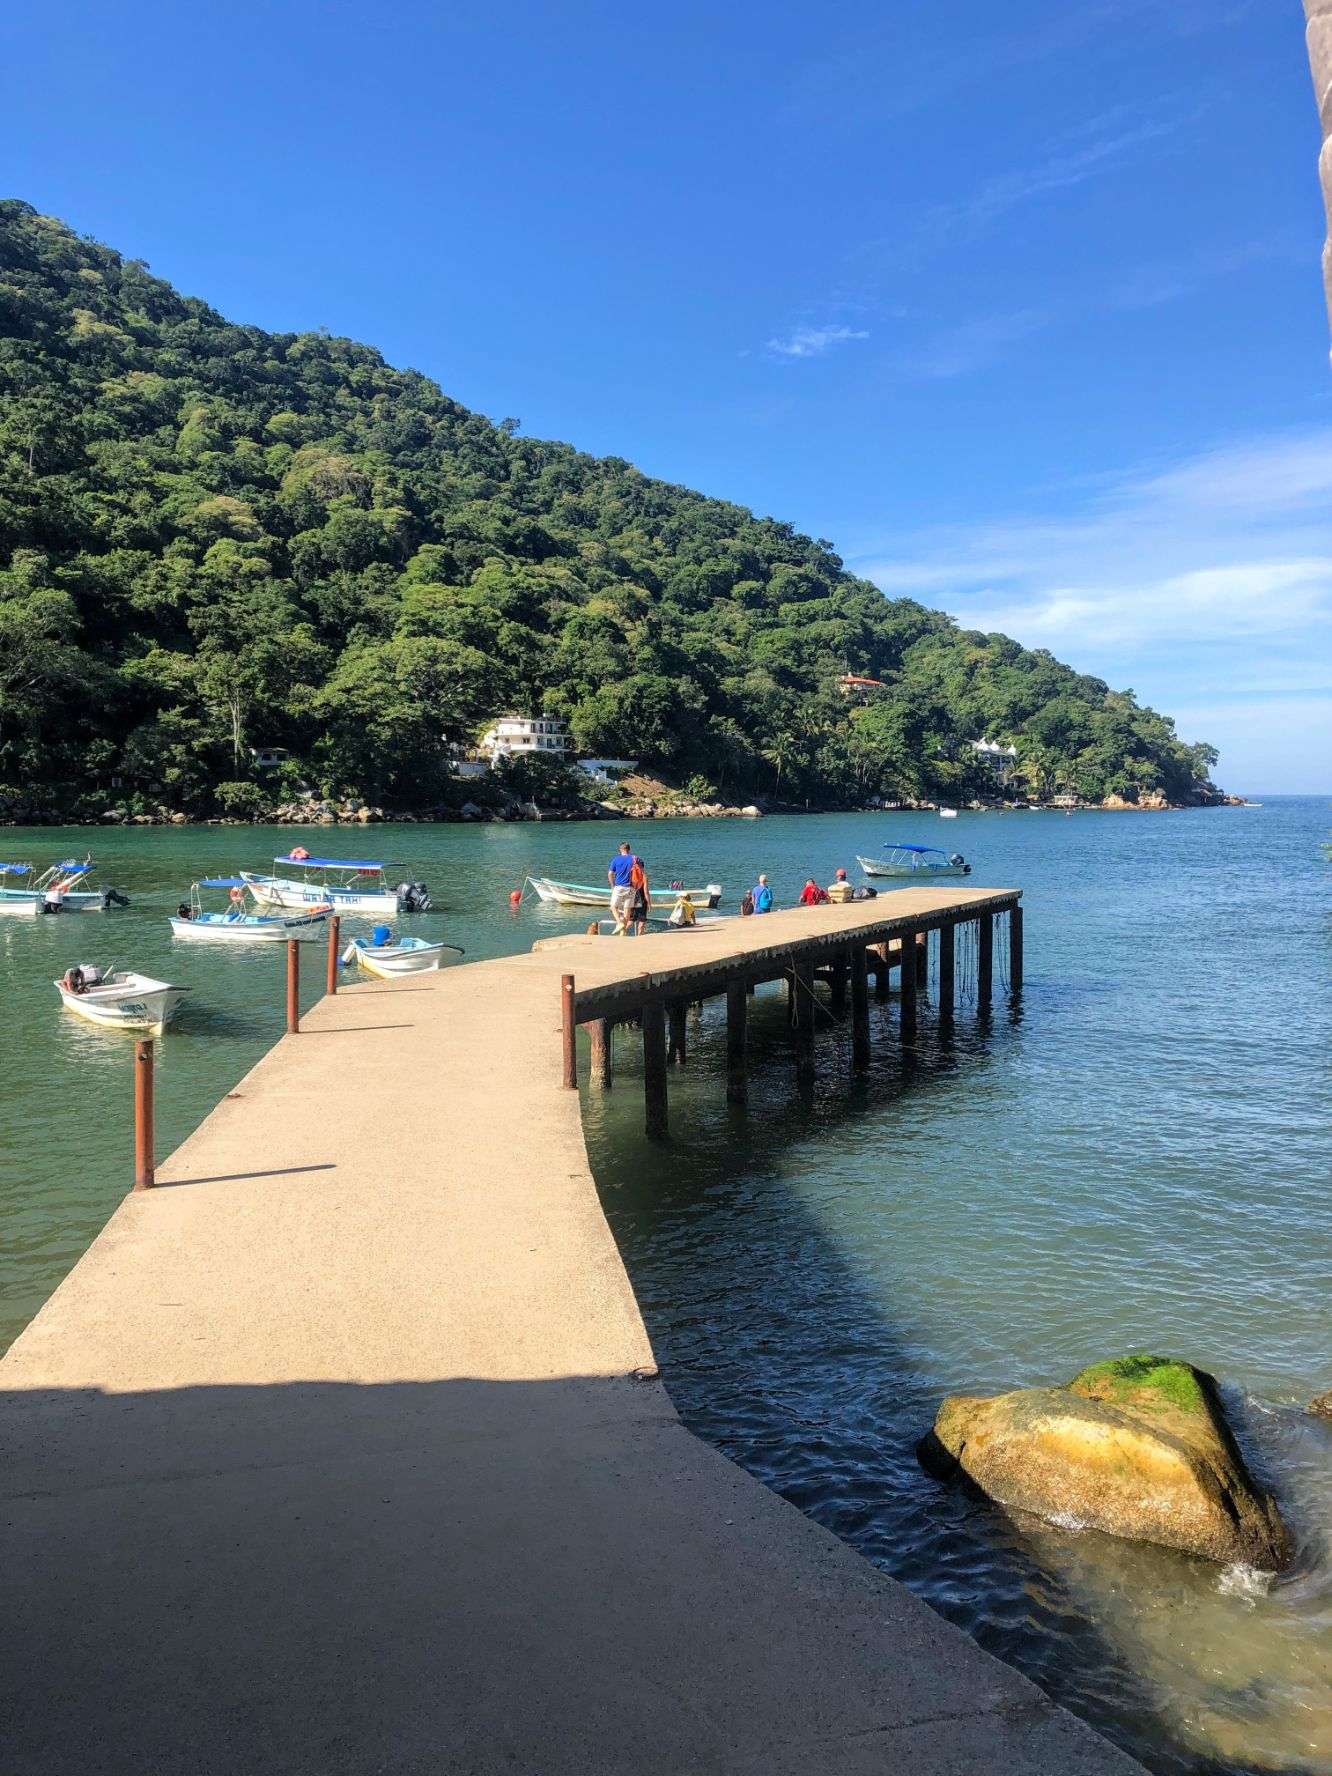 water taxi dock in Boca de Tomatlan